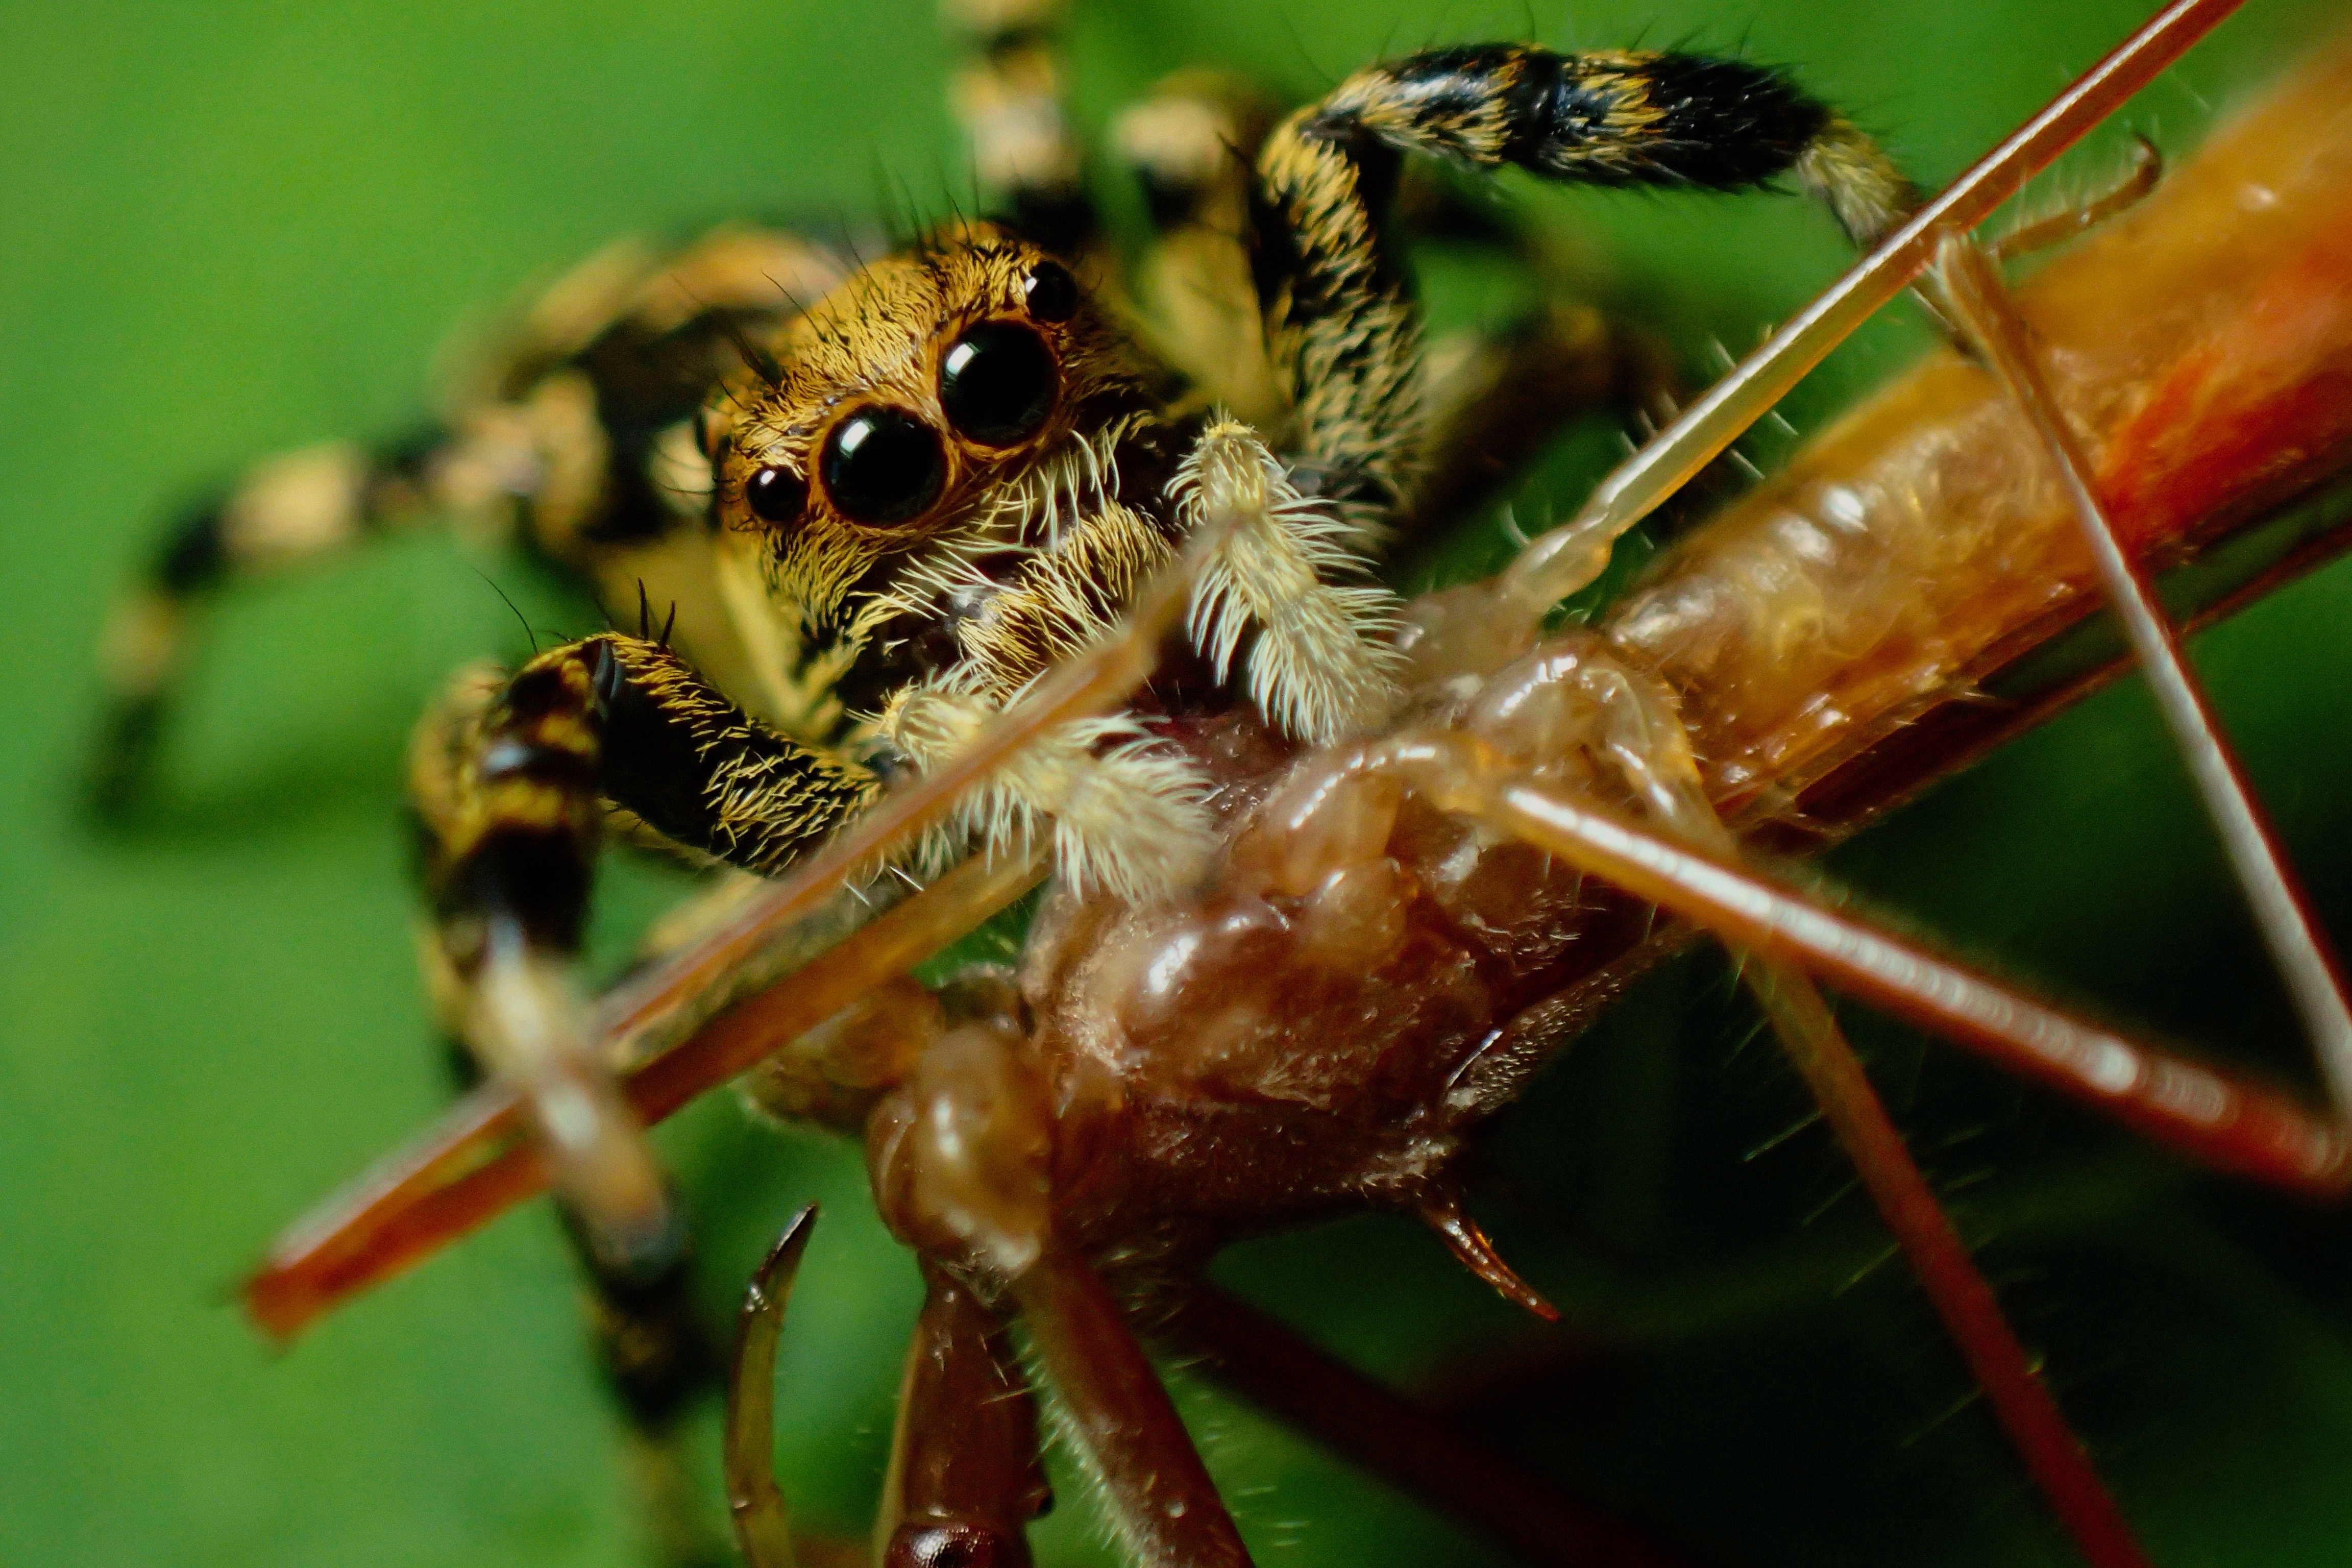 Jumping spider (Salticidae: Phiale cf. guttata) eating an assassin bug (Reduviidae)